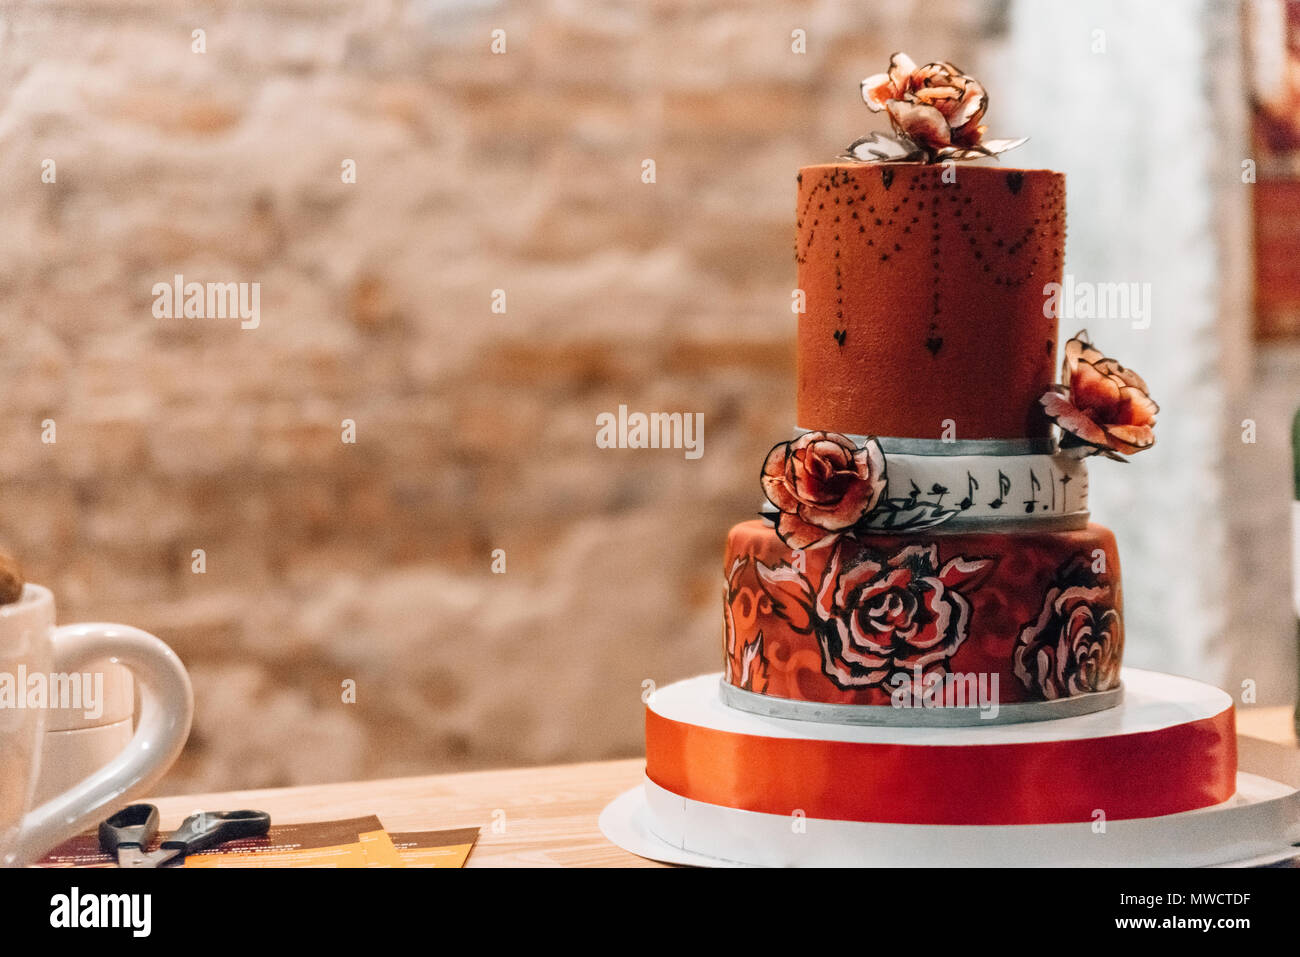 Wedding in the style of rock. Rocker or Biker wedding. Guys with stylish leather jackets. It's a rock'n'roll baby A sweet couple is cutting a wedding  - Stock Image